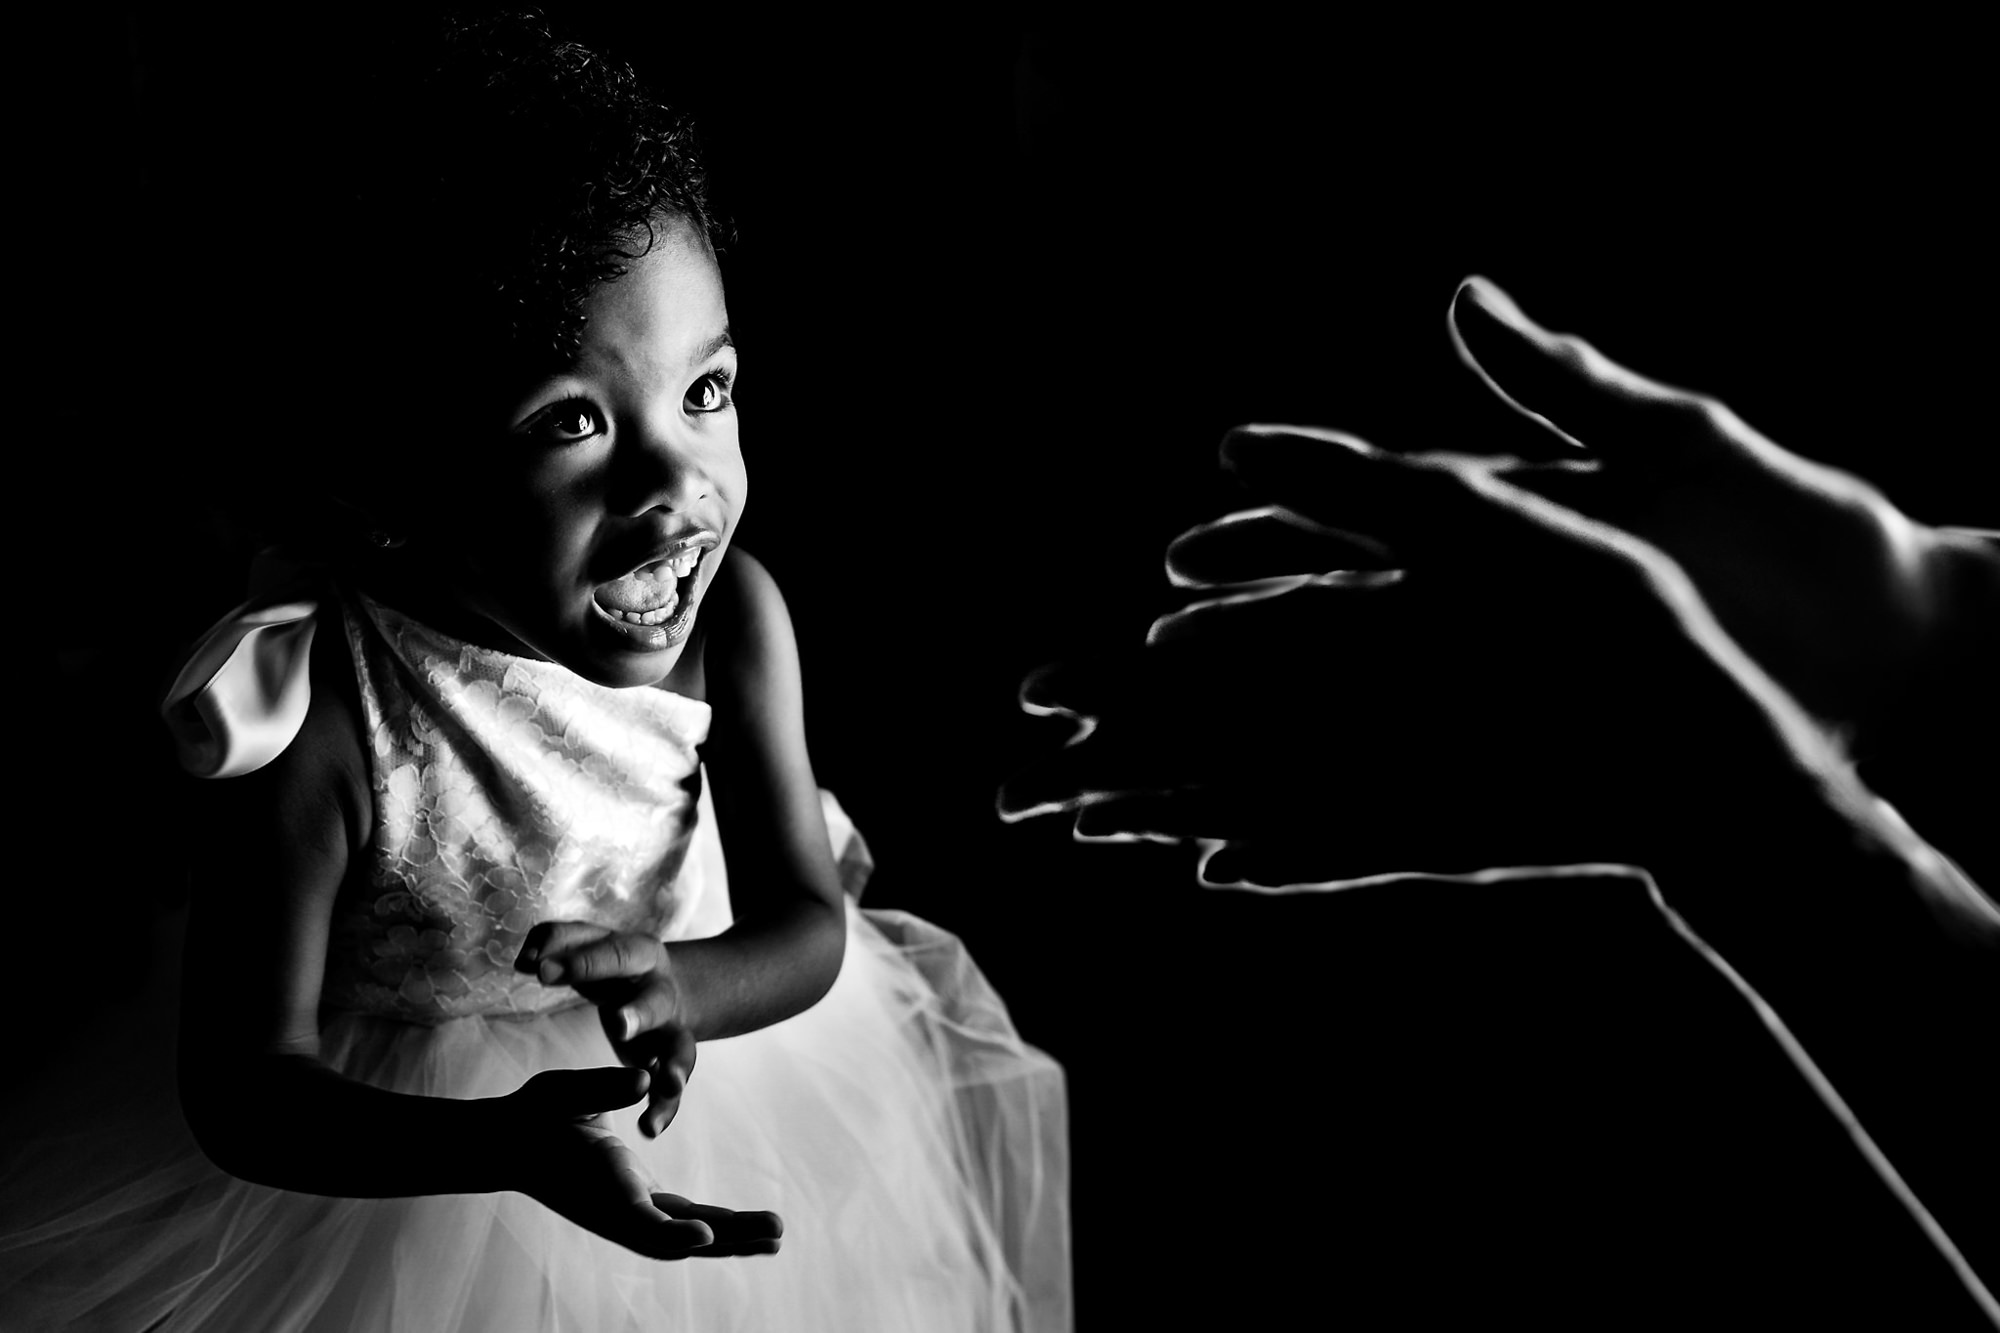 Little girl smiles and woman reaches out hands to her - photo by Two Mann Studios